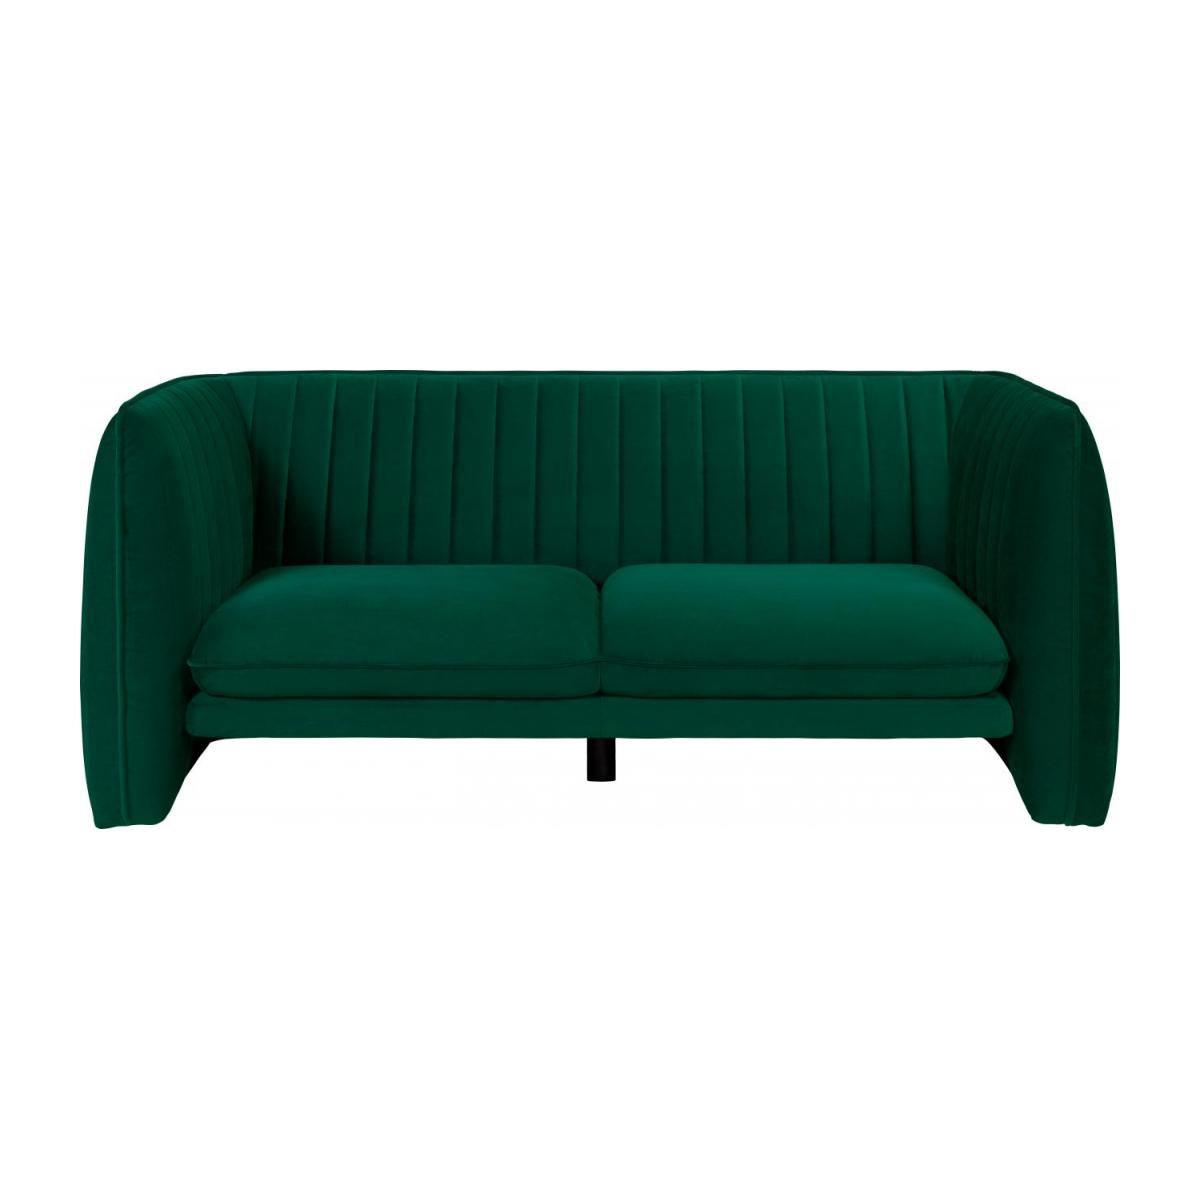 Bettsofa Chesterfield Schlafsofa Samt Grün Besten Bettsofa Design Ideen